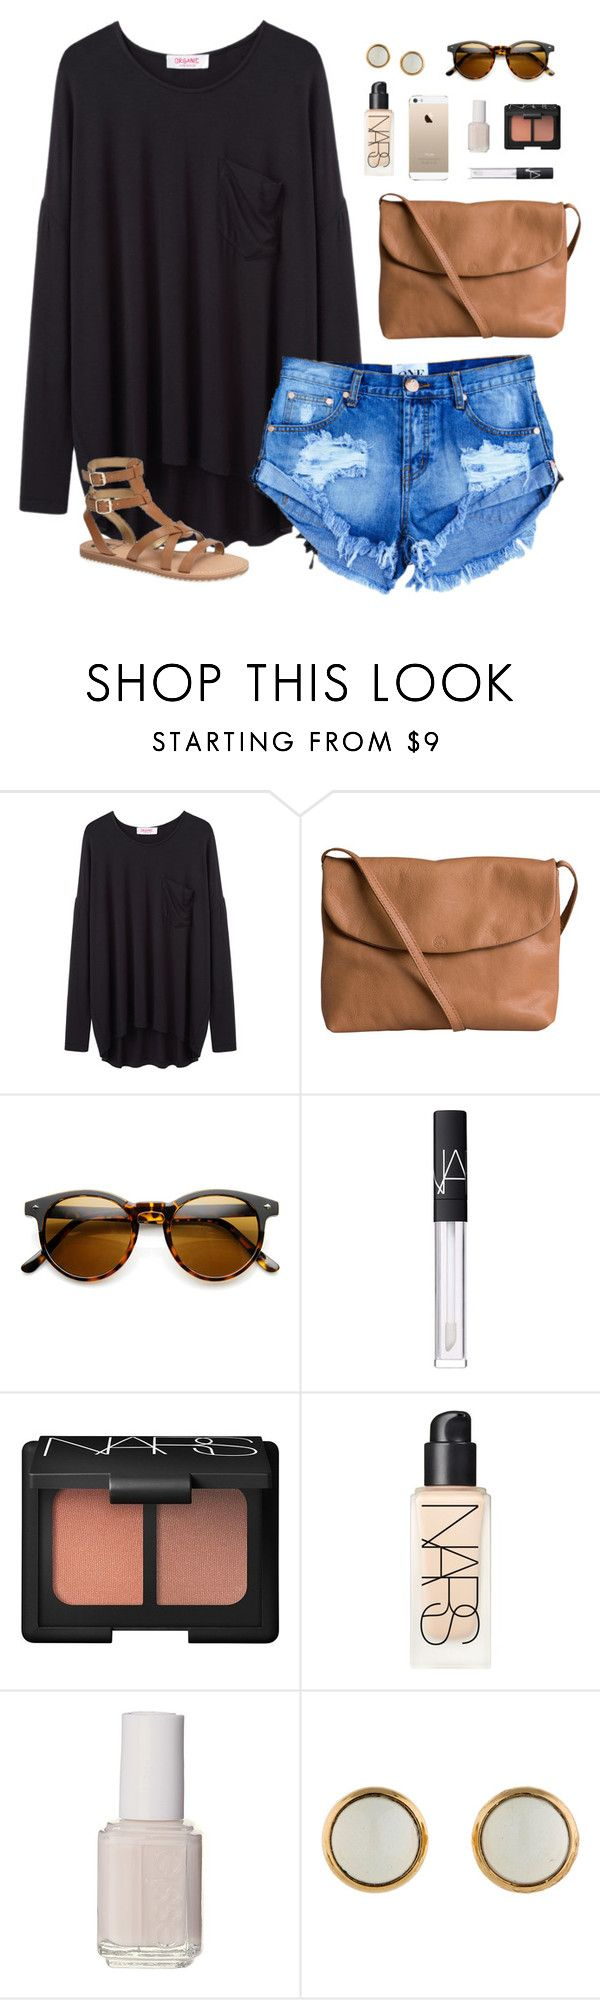 """""""fall mood summer weather"""" by classically-preppy ❤ liked on Polyvore featuring Organic by John Patrick, Pieces, NARS Cosmetics, Essie, Hermès and Sam Edelman"""